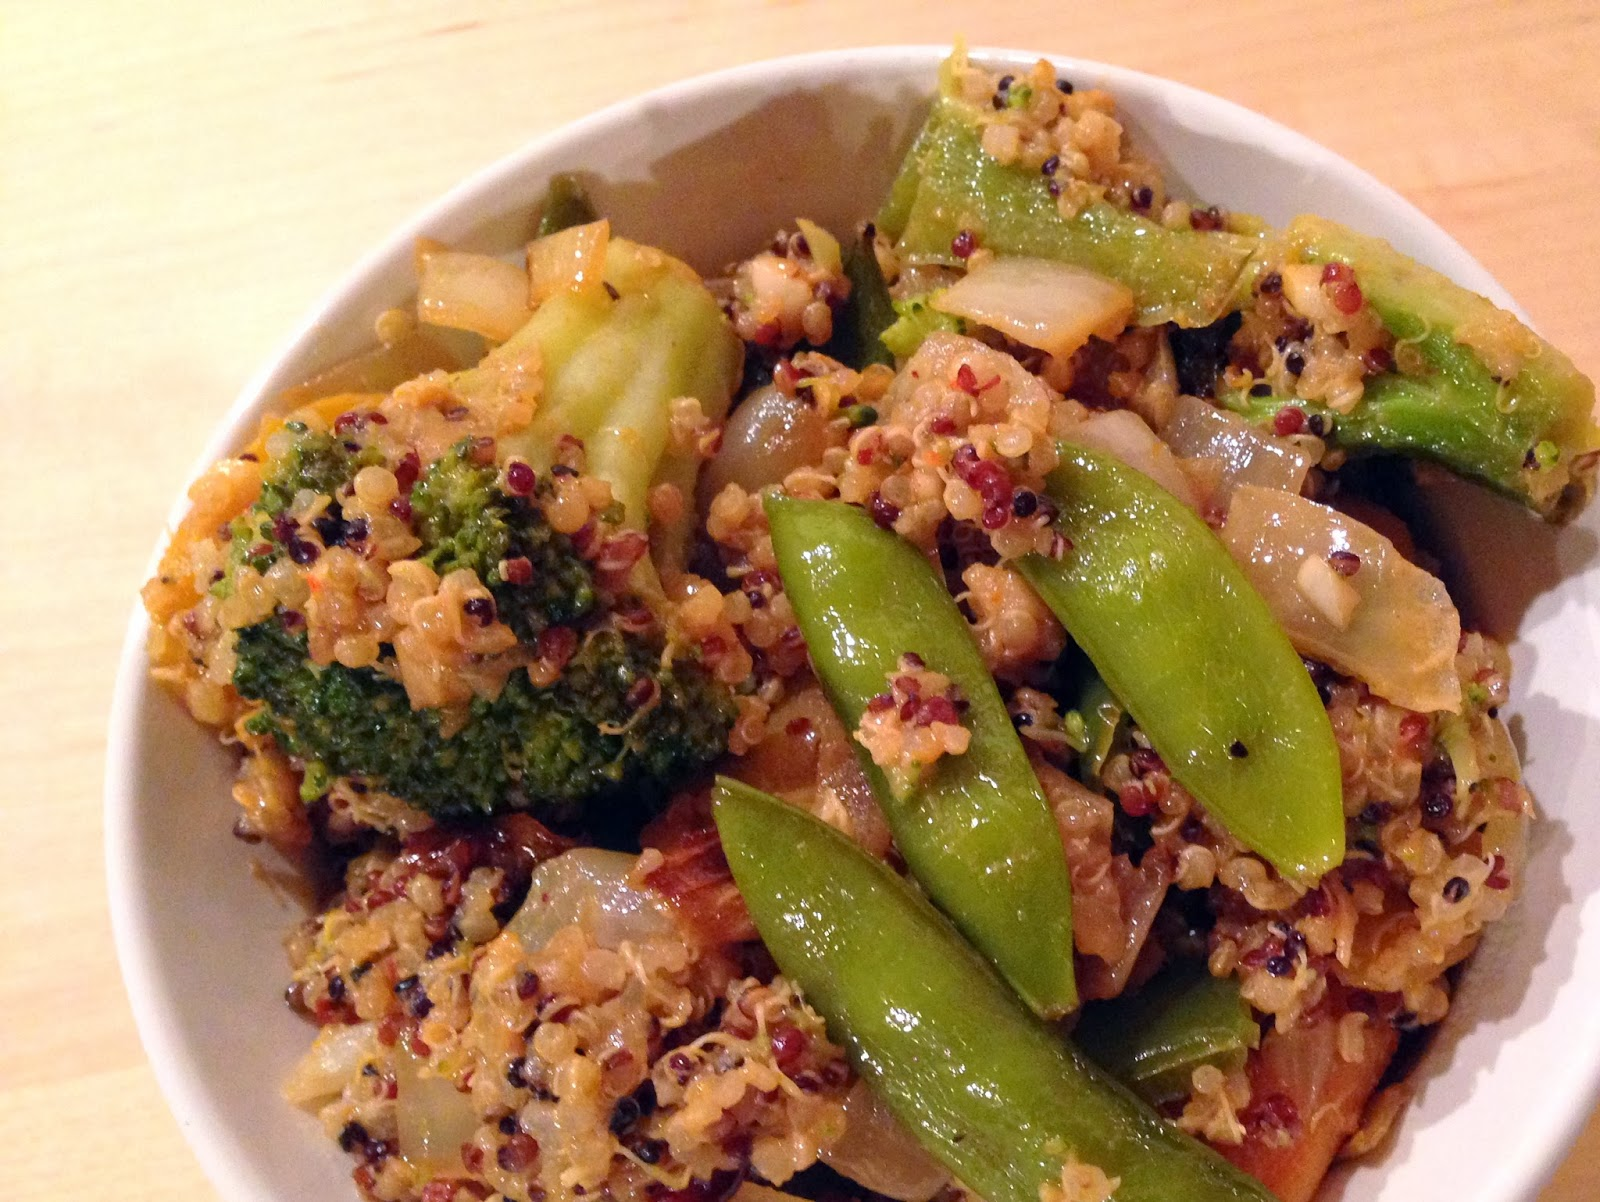 Roasted Veggie Quinoa Bowls with Peanut Sauce